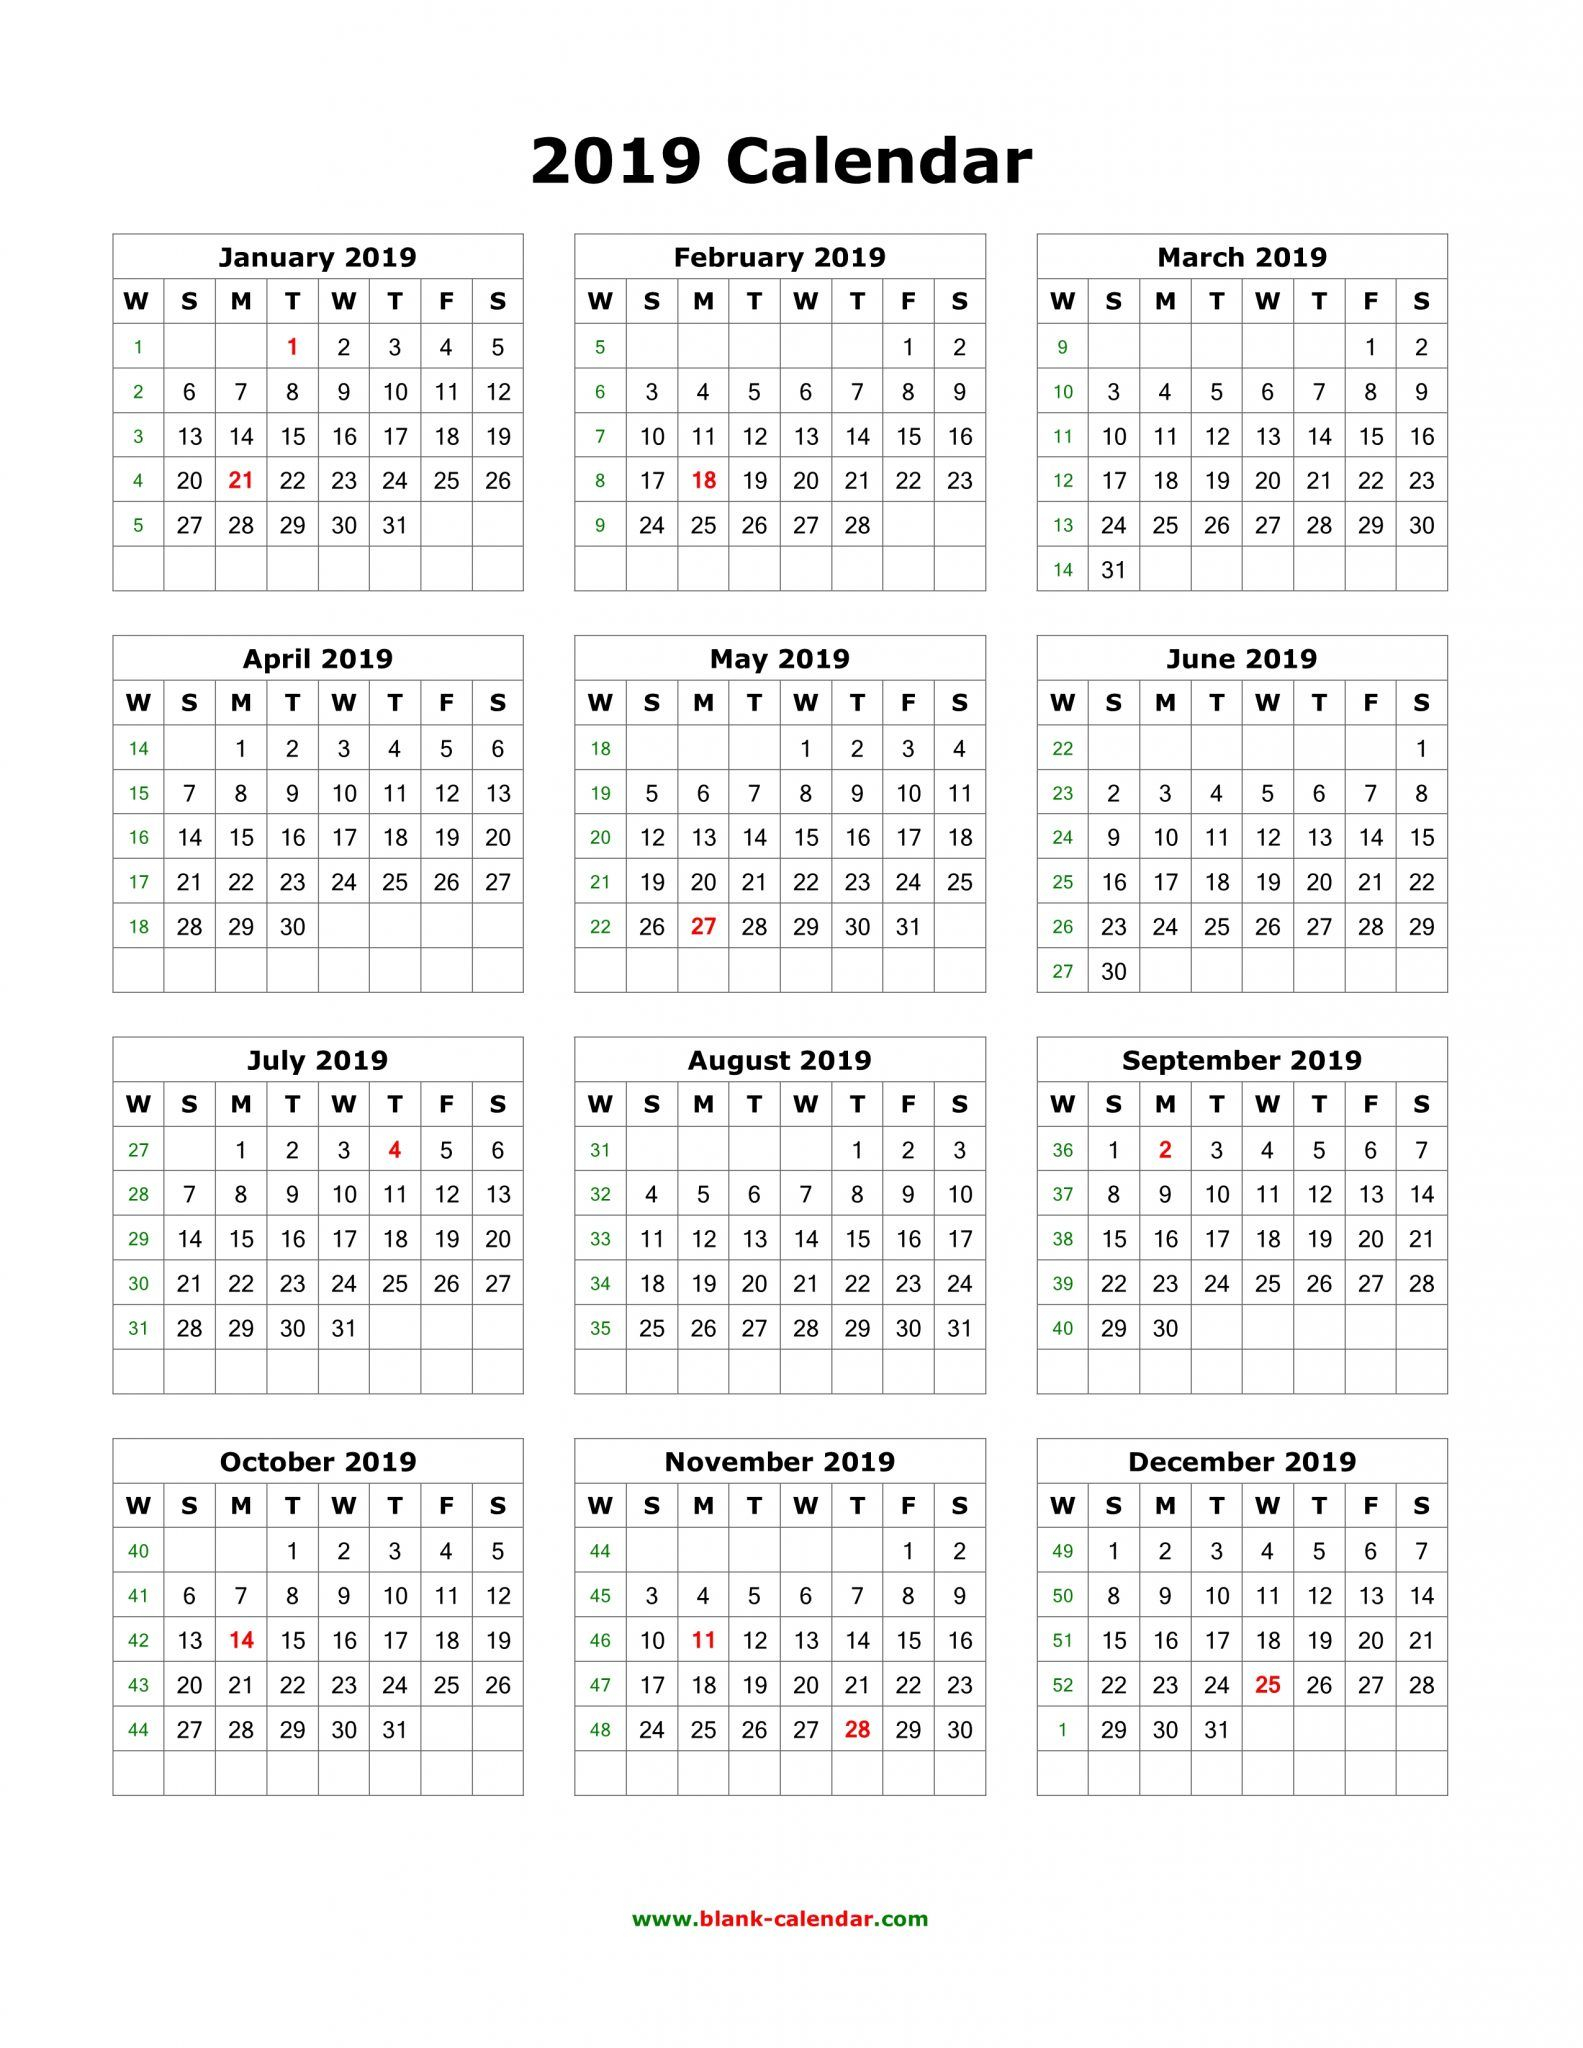 Download Blank 2019 Calendar Templates | 12 Month Calendar In One with 12 Month Monthly Calendar Template Printable